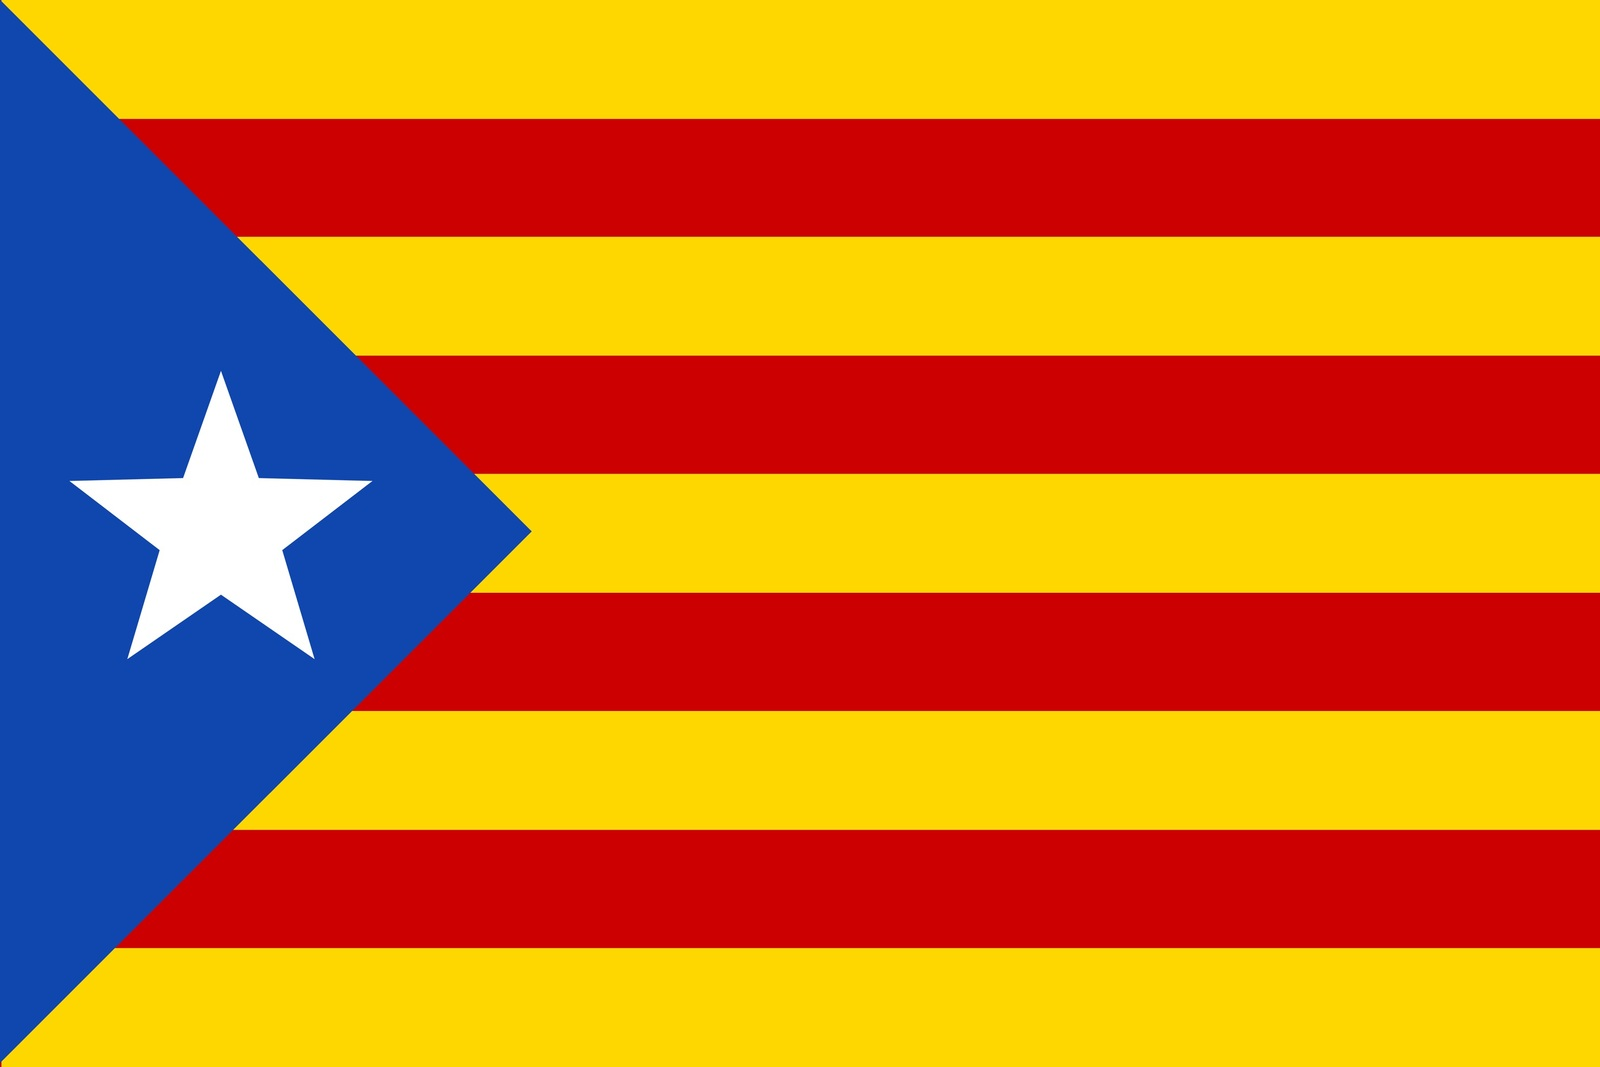 Creamy  catalan flag  18.10.17